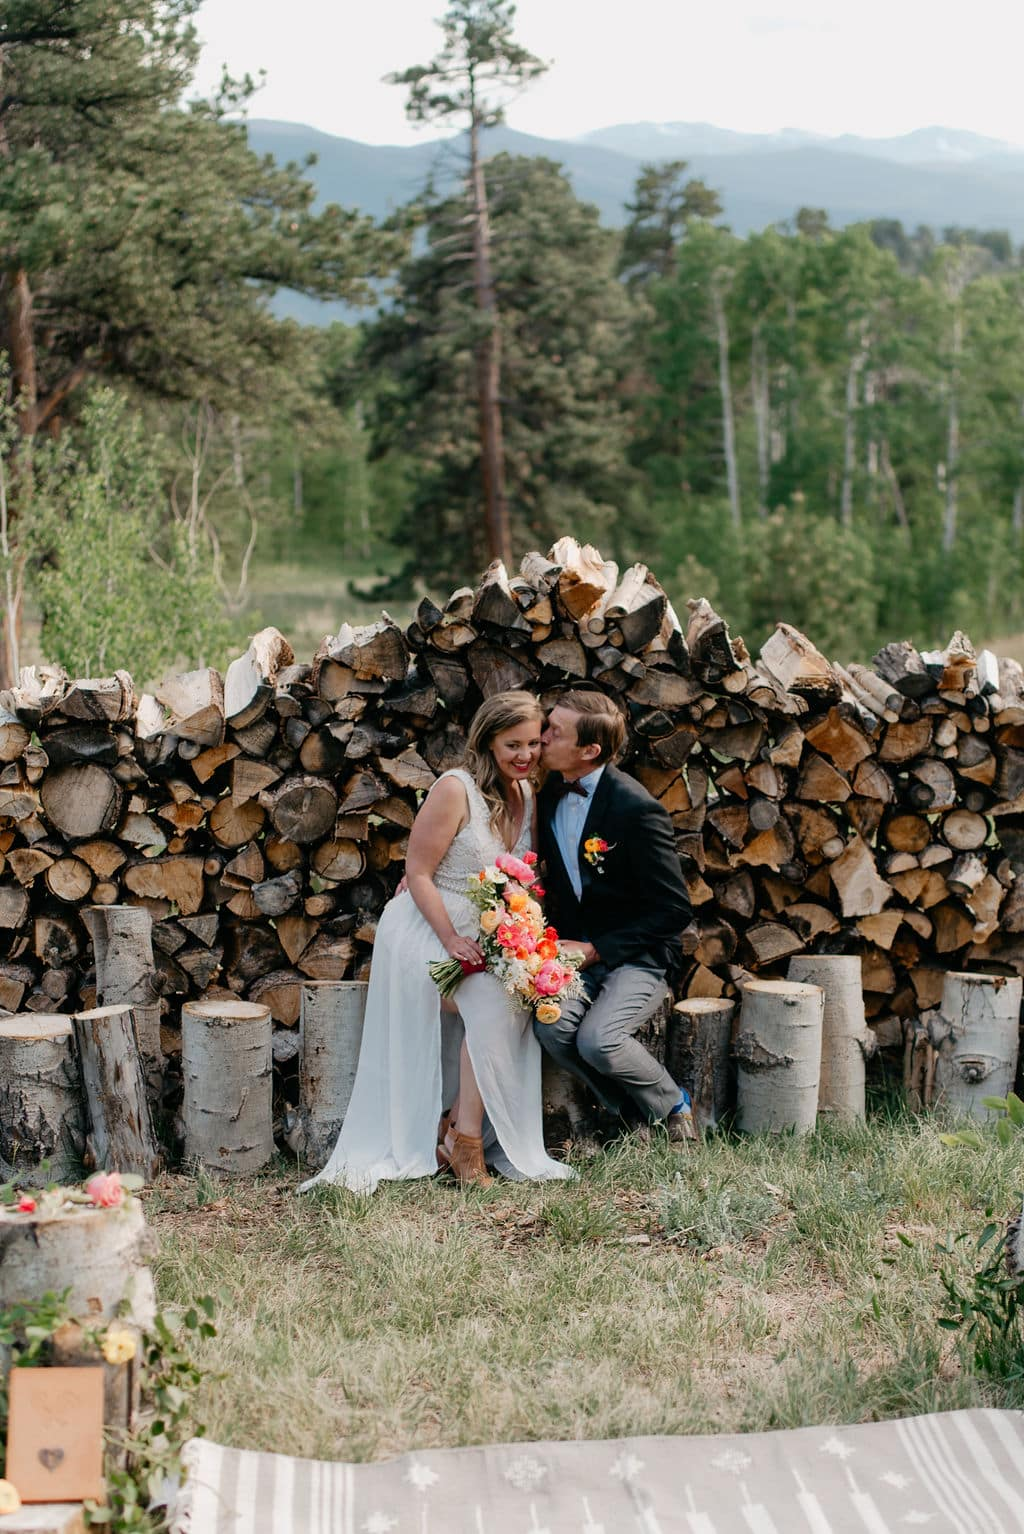 Romantic bride and groom portraits with firewood pile at new colorado elopement location